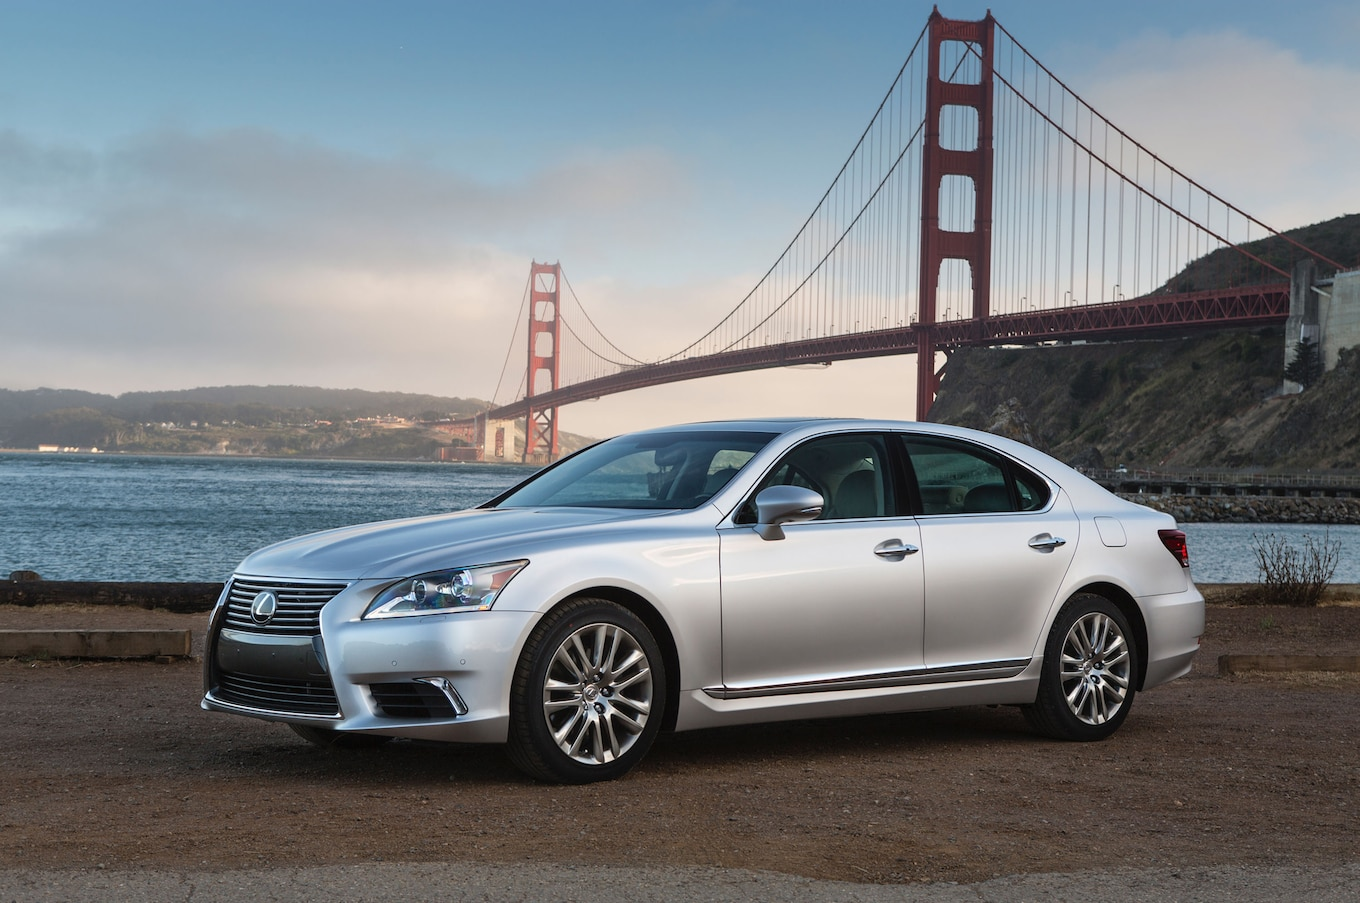 Resale Value 2016 Jaguar XJ vs Lexus BMW and Audi Motor Trend